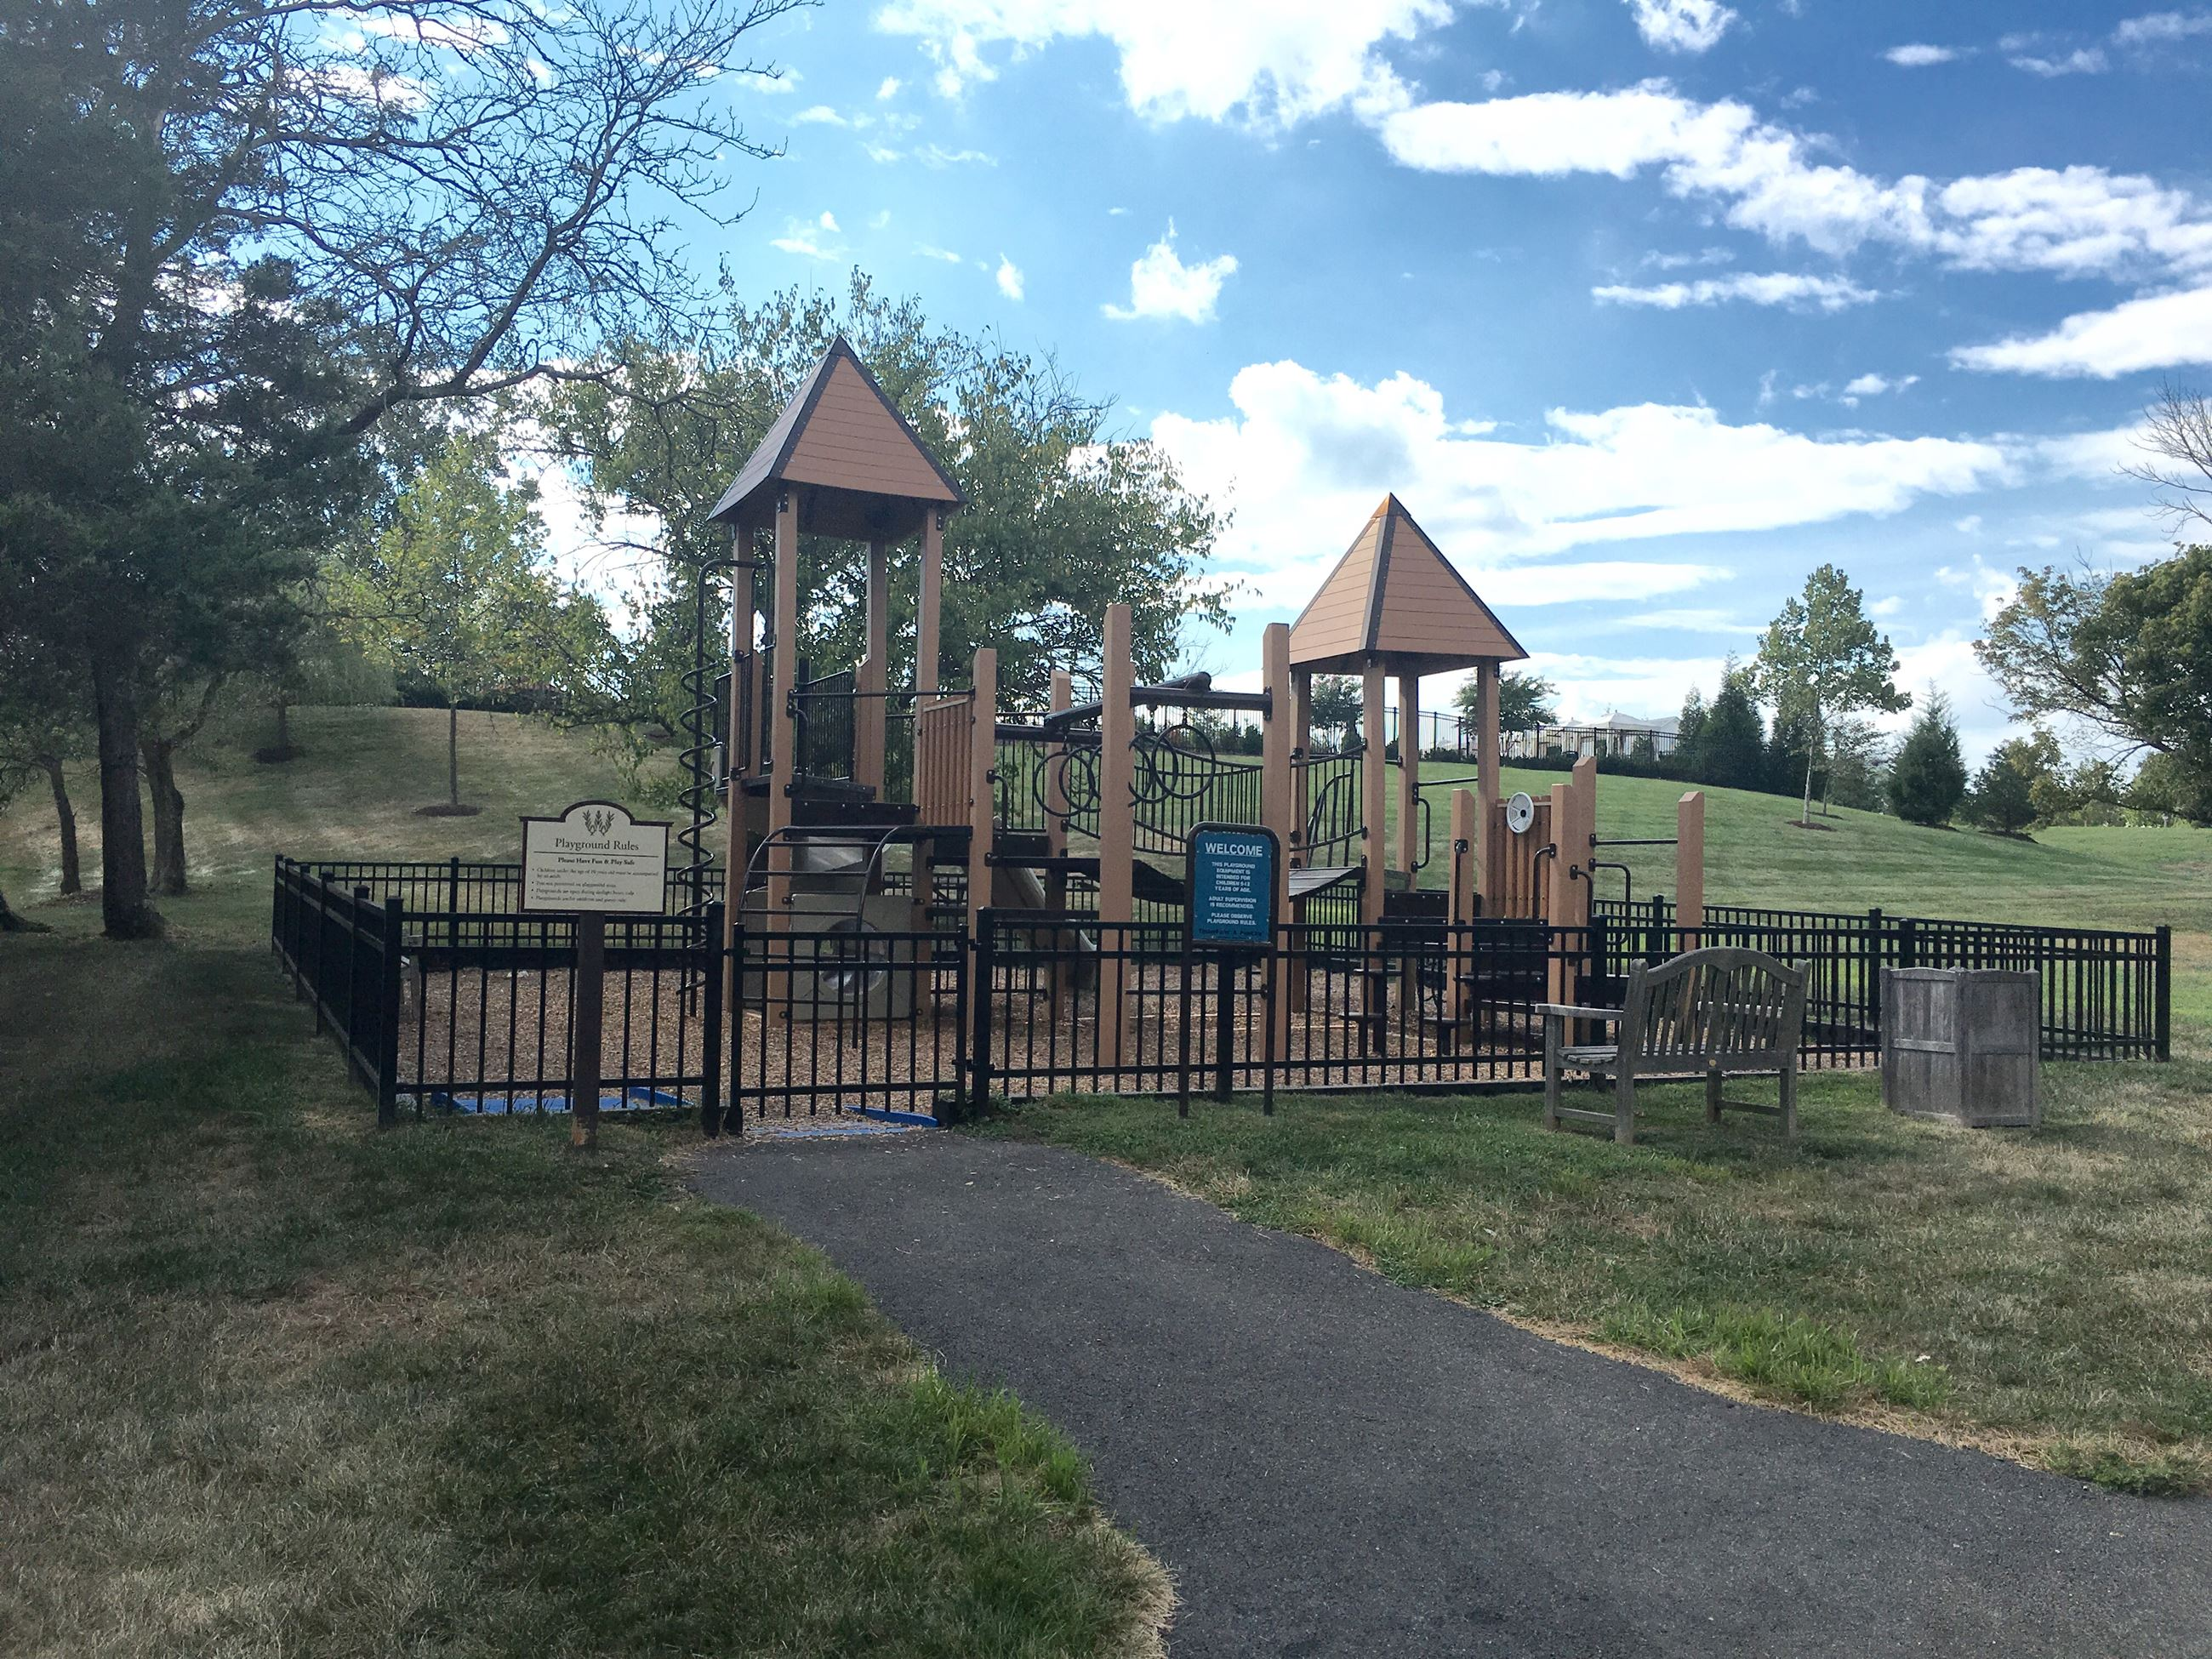 Sycamore Way Playground